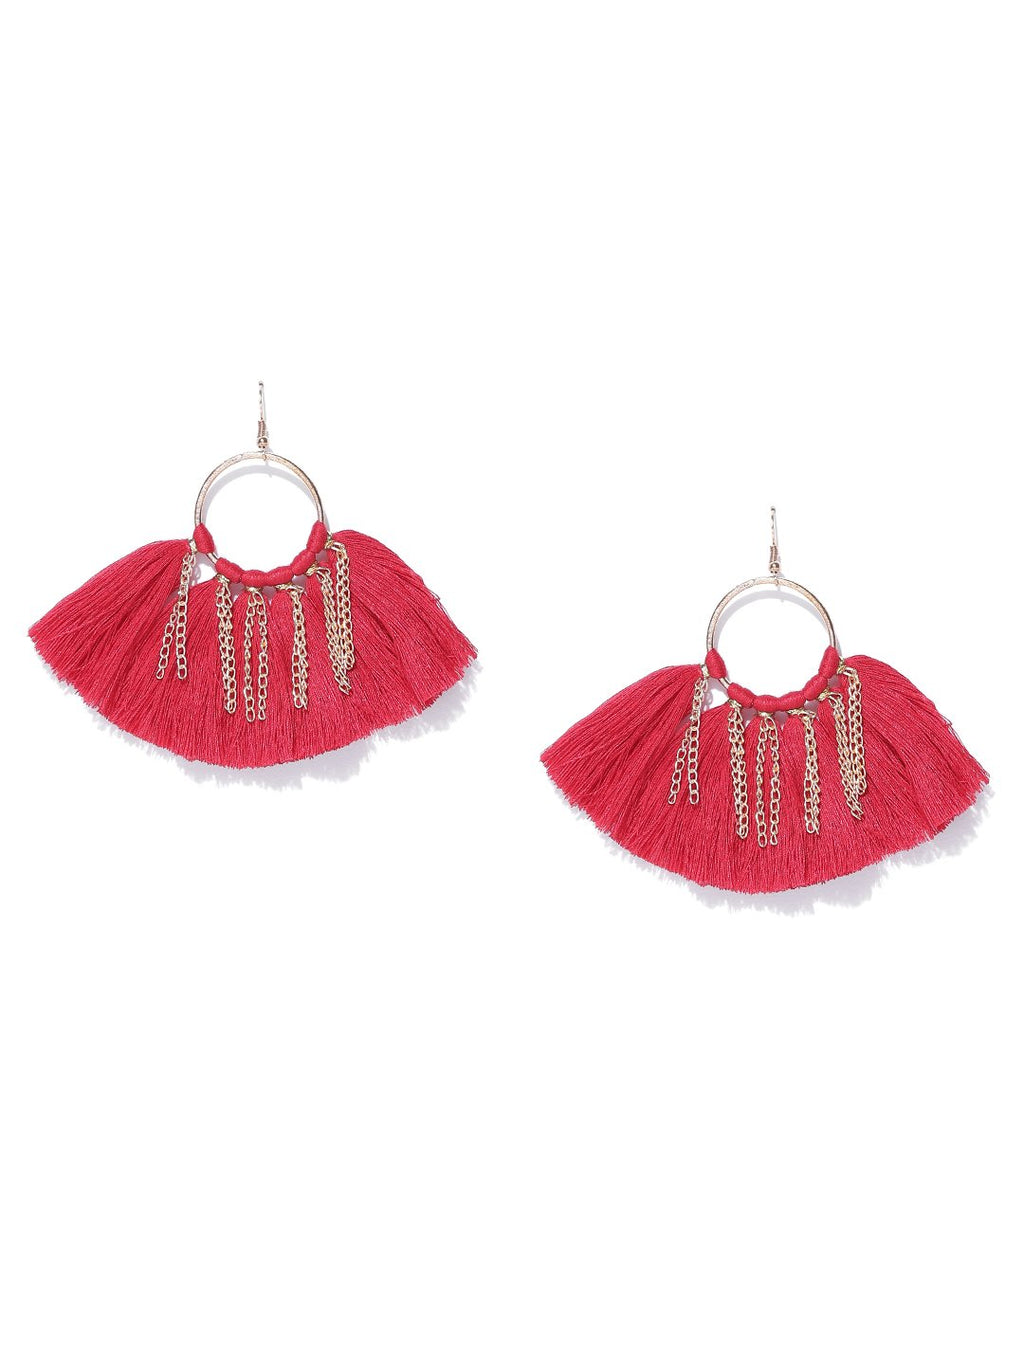 Blueberry red and gold tassel earrings